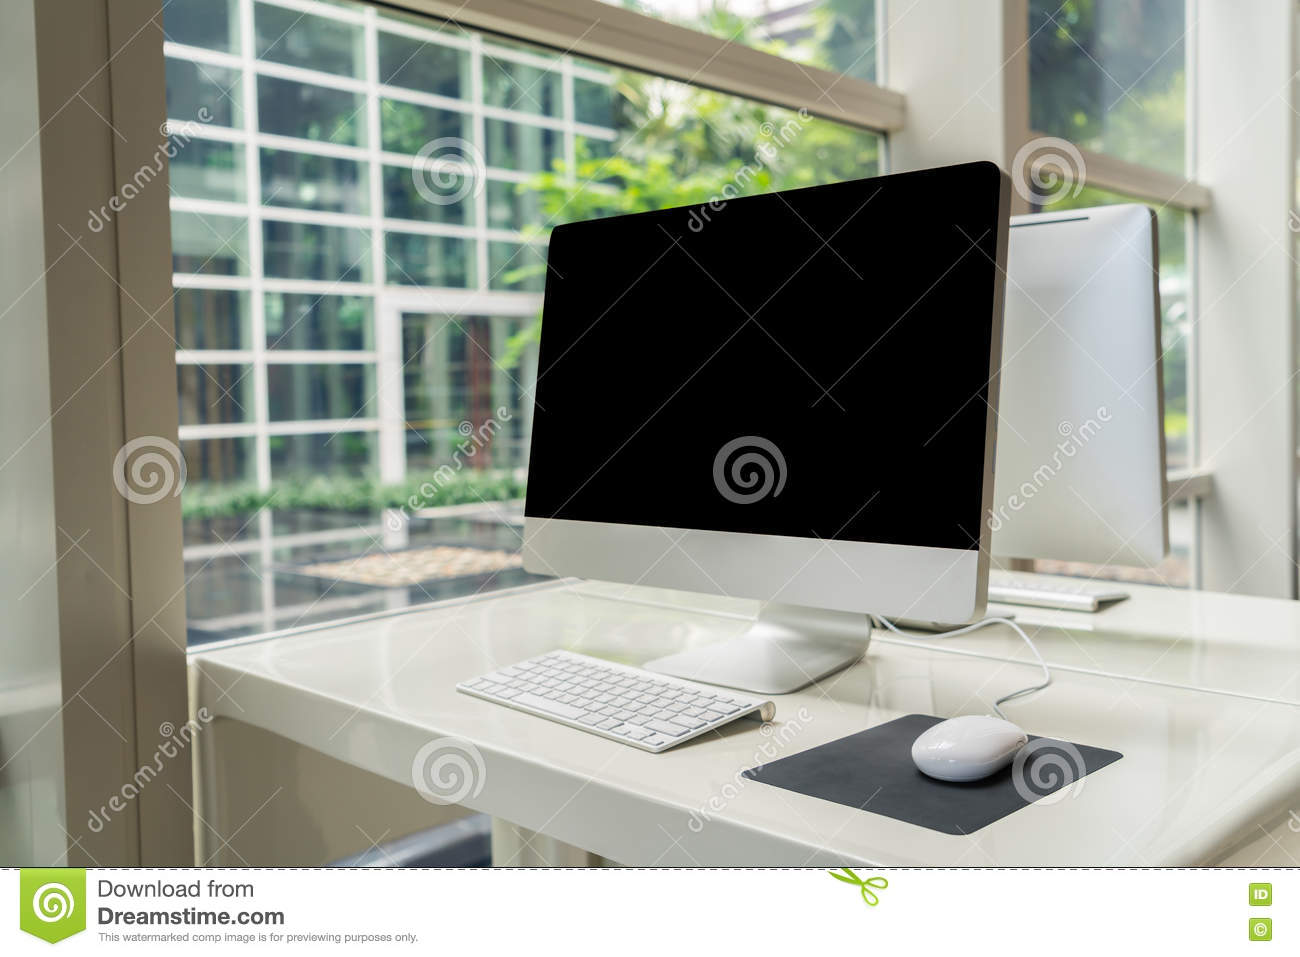 Computer on table in office, Workspace .